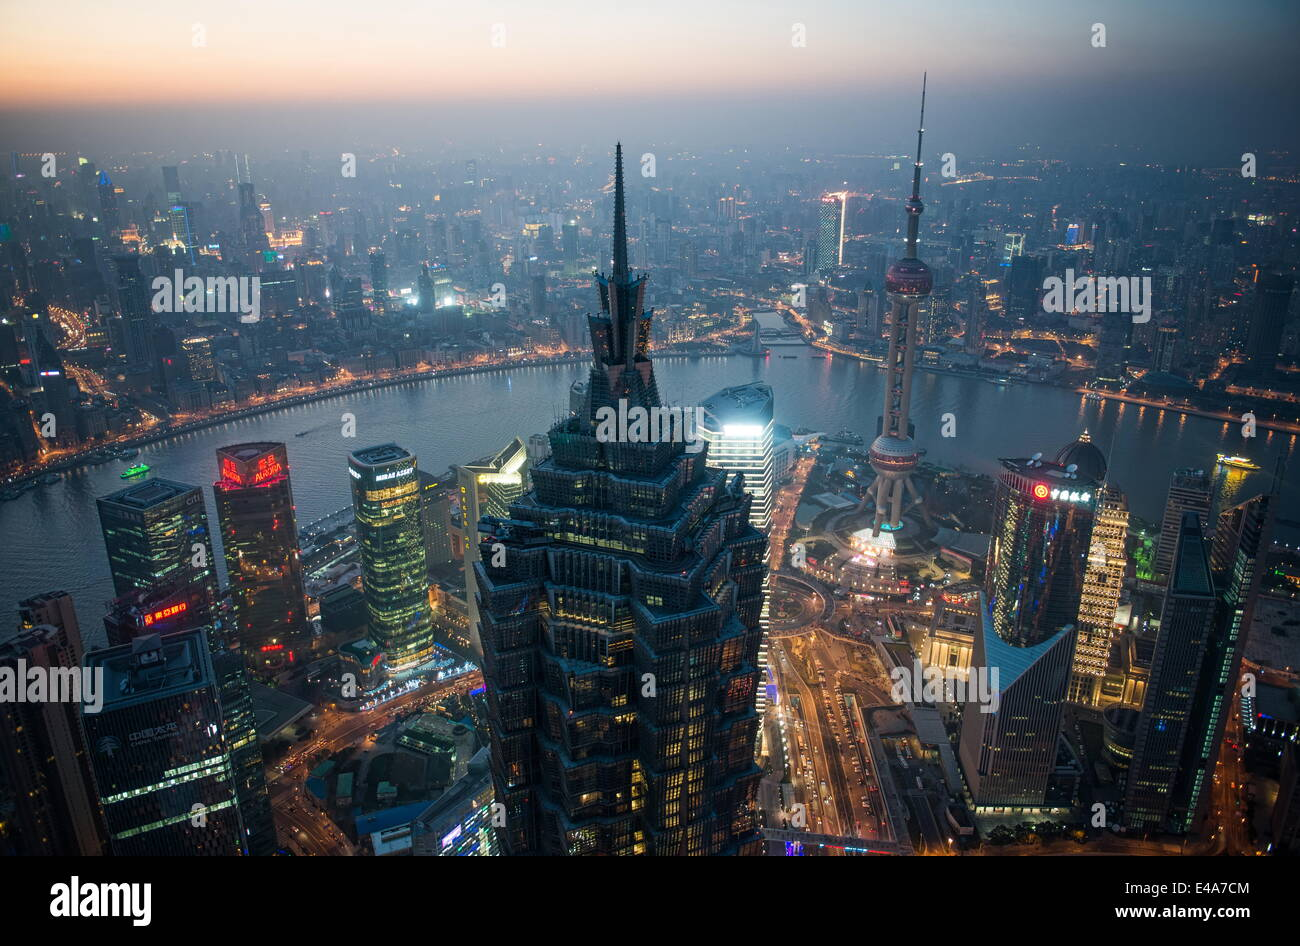 Shanghai Pudong with Jin Mao Tower, Oriental Pearl Tower, Huangpu River and Puxi cityscape, Shanghai, China, Asia - Stock Image